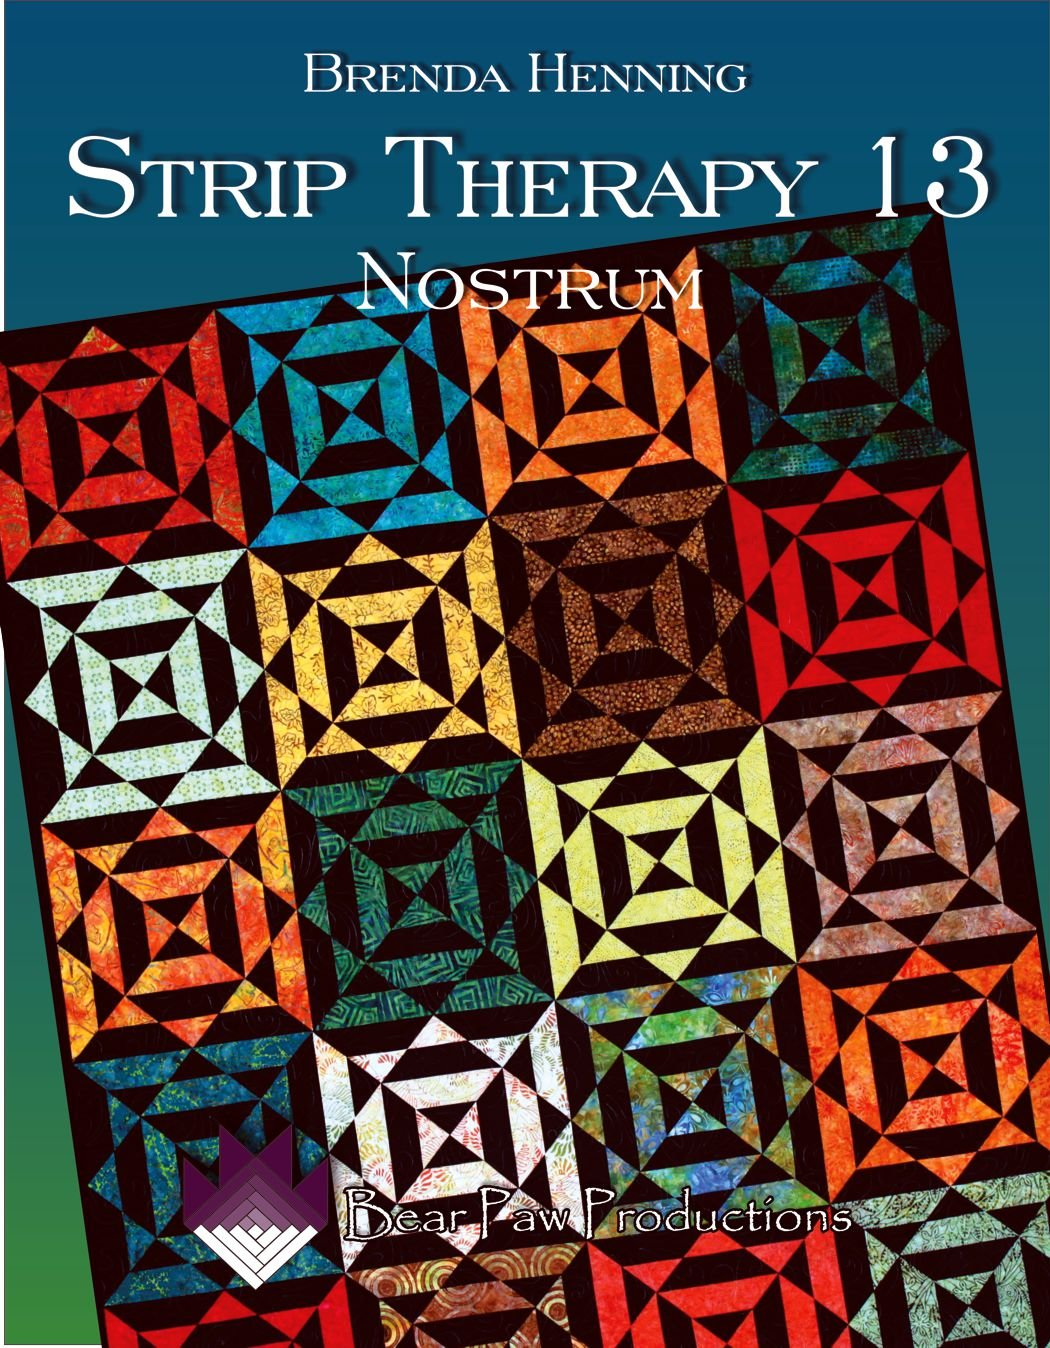 Strip Therapy 13 - Nostrum